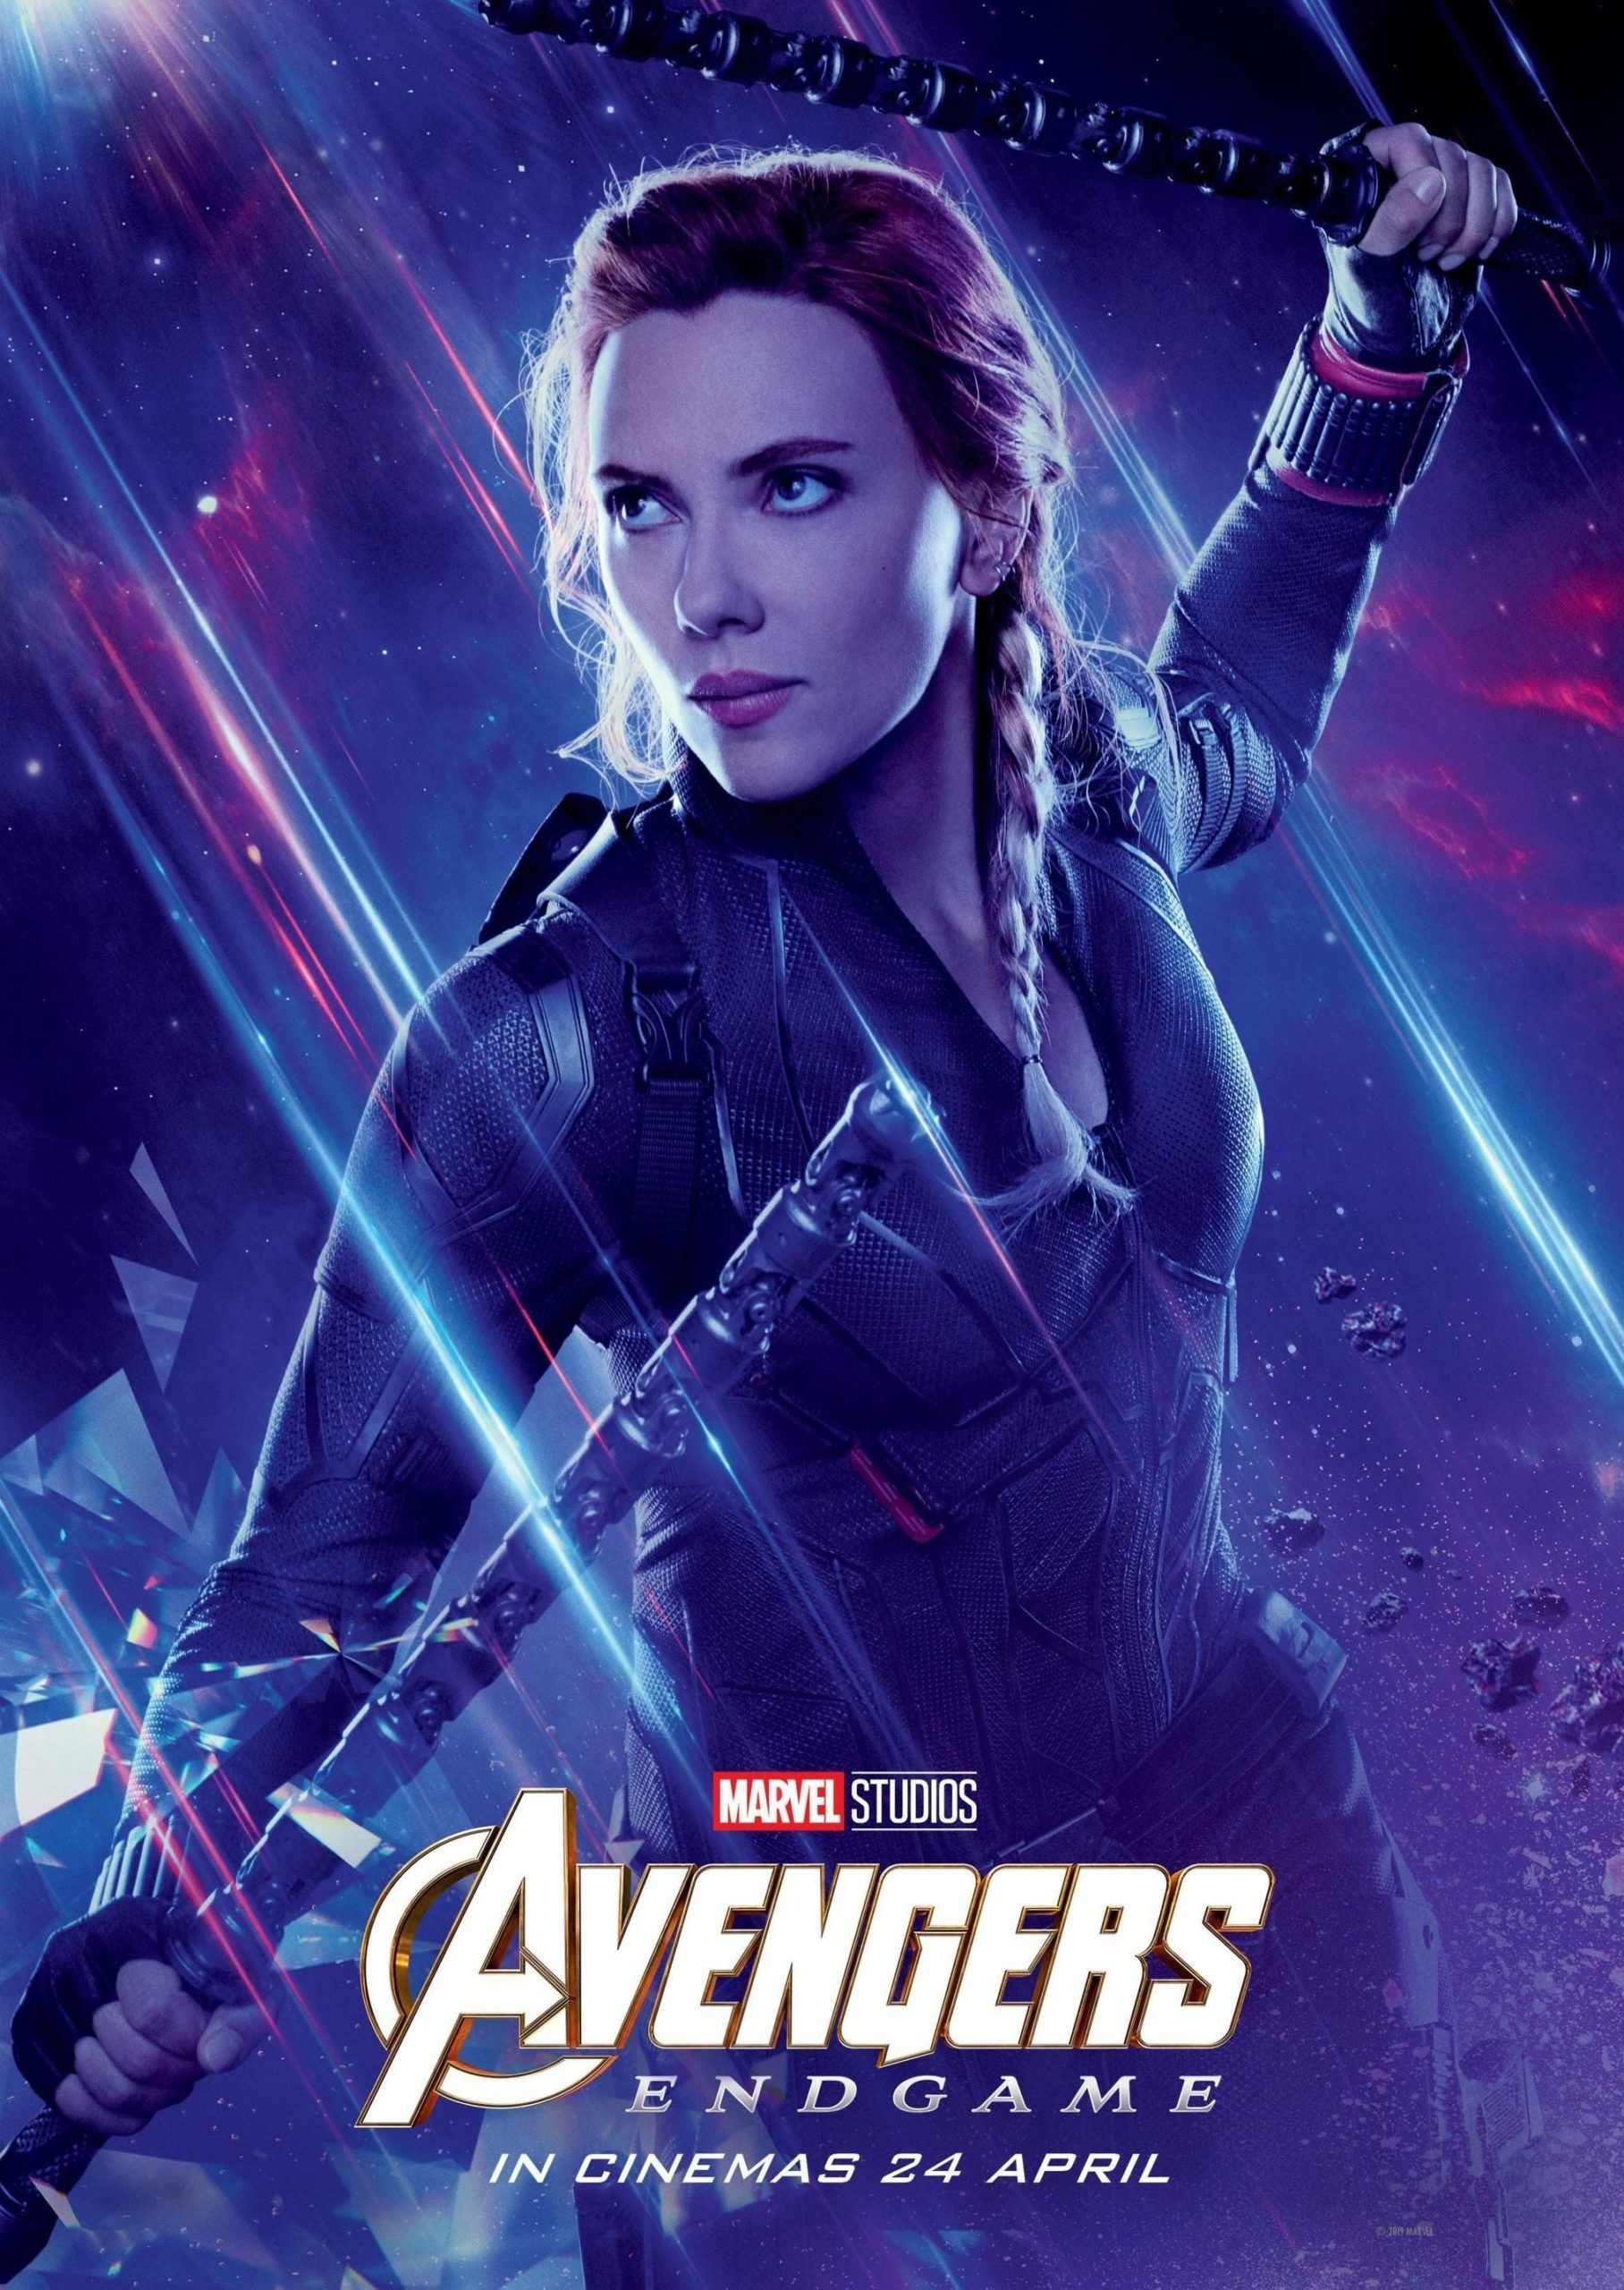 Avengers Endgame International Character Posters Revealed In 2020 Black Widow Marvel Marvel Movie Posters Avengers Pictures